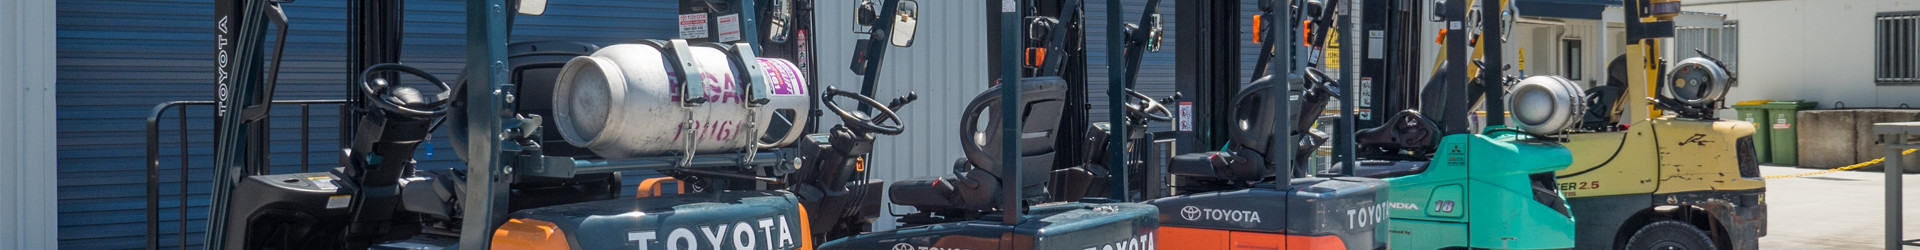 Forklift Training Course Order Picker Licences In Gold Coast